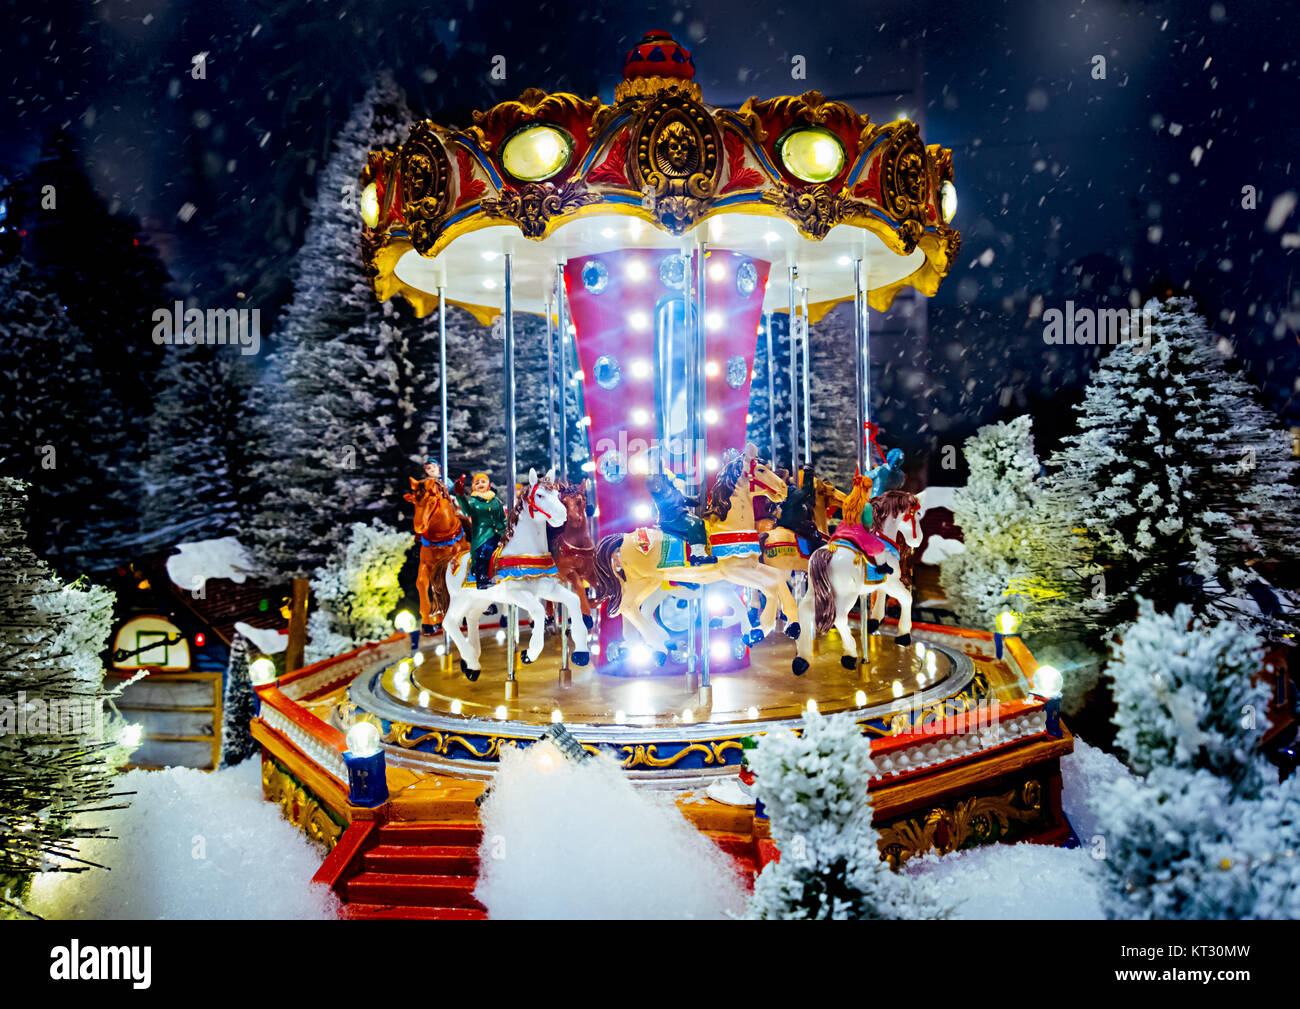 miniature christmas village scene christmas decorations toys stock image - Miniature Christmas Village